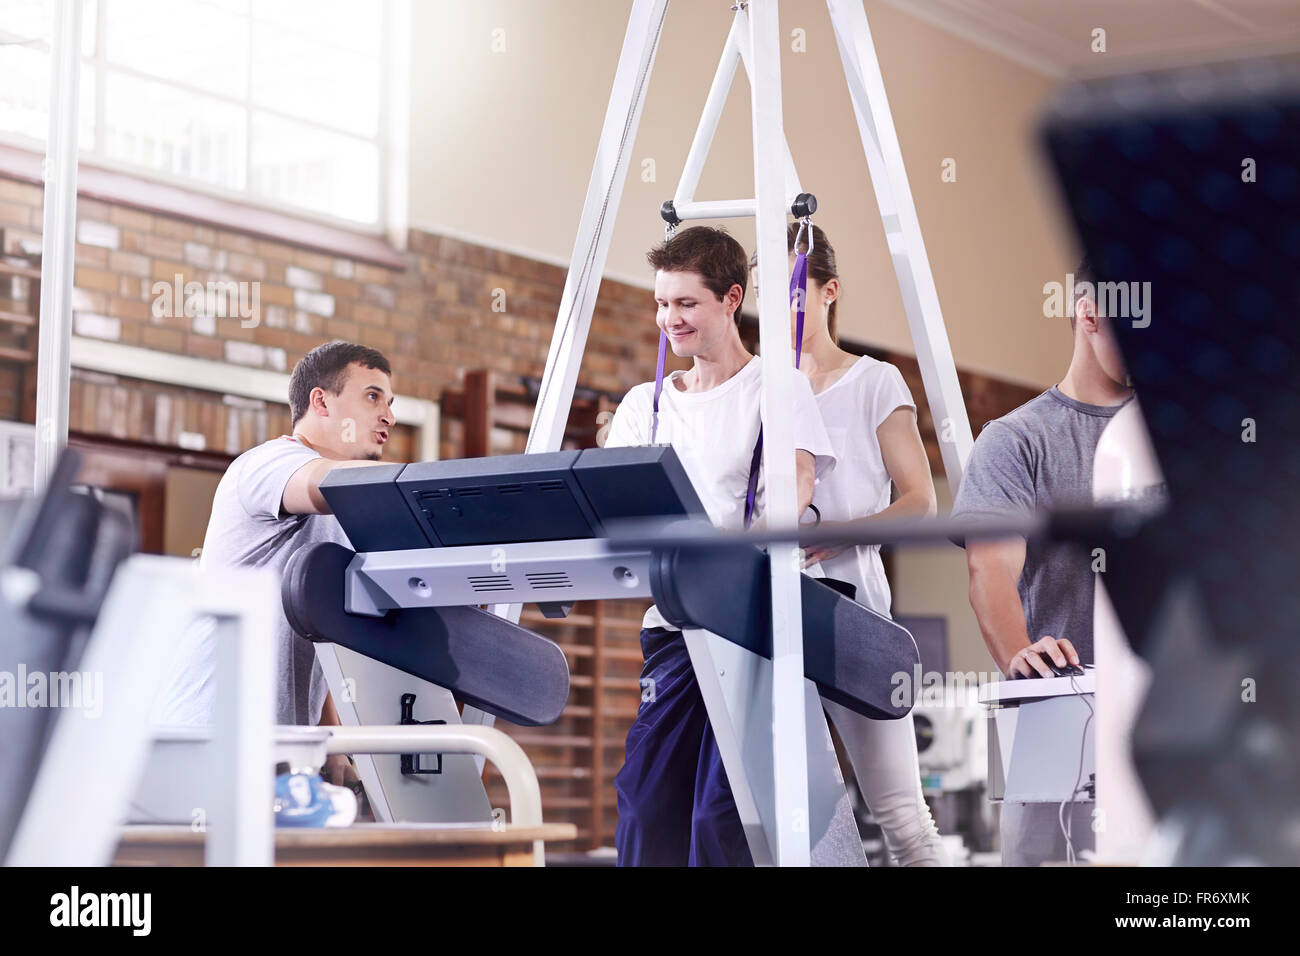 Physical therapists guiding man on treadmill - Stock Image